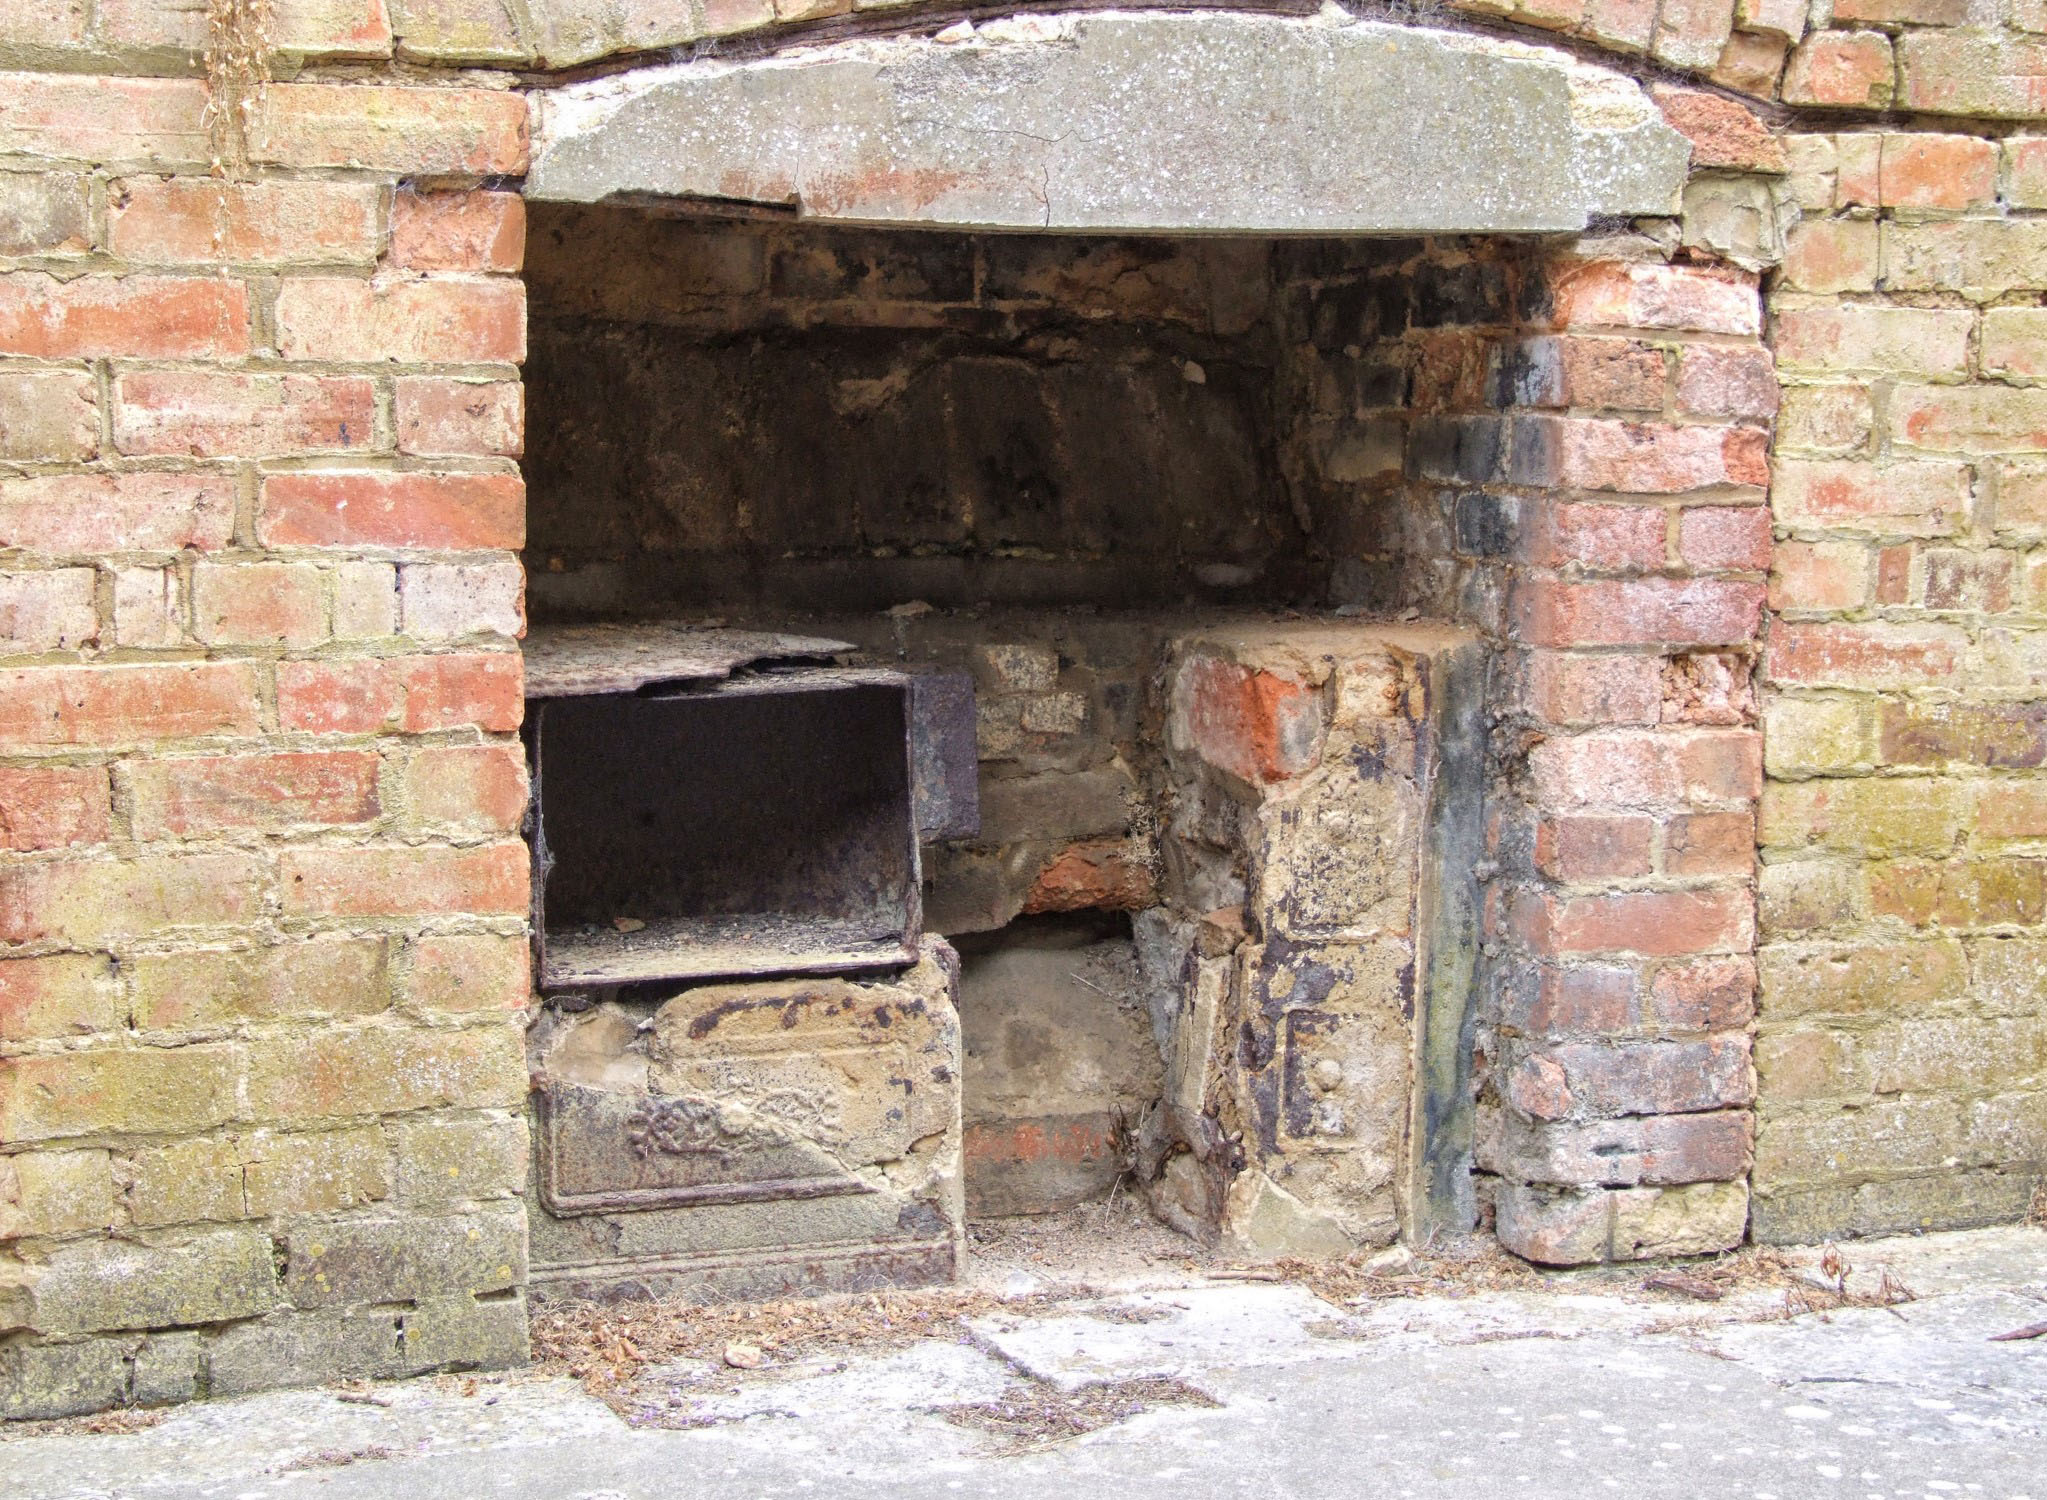 Old brick oven